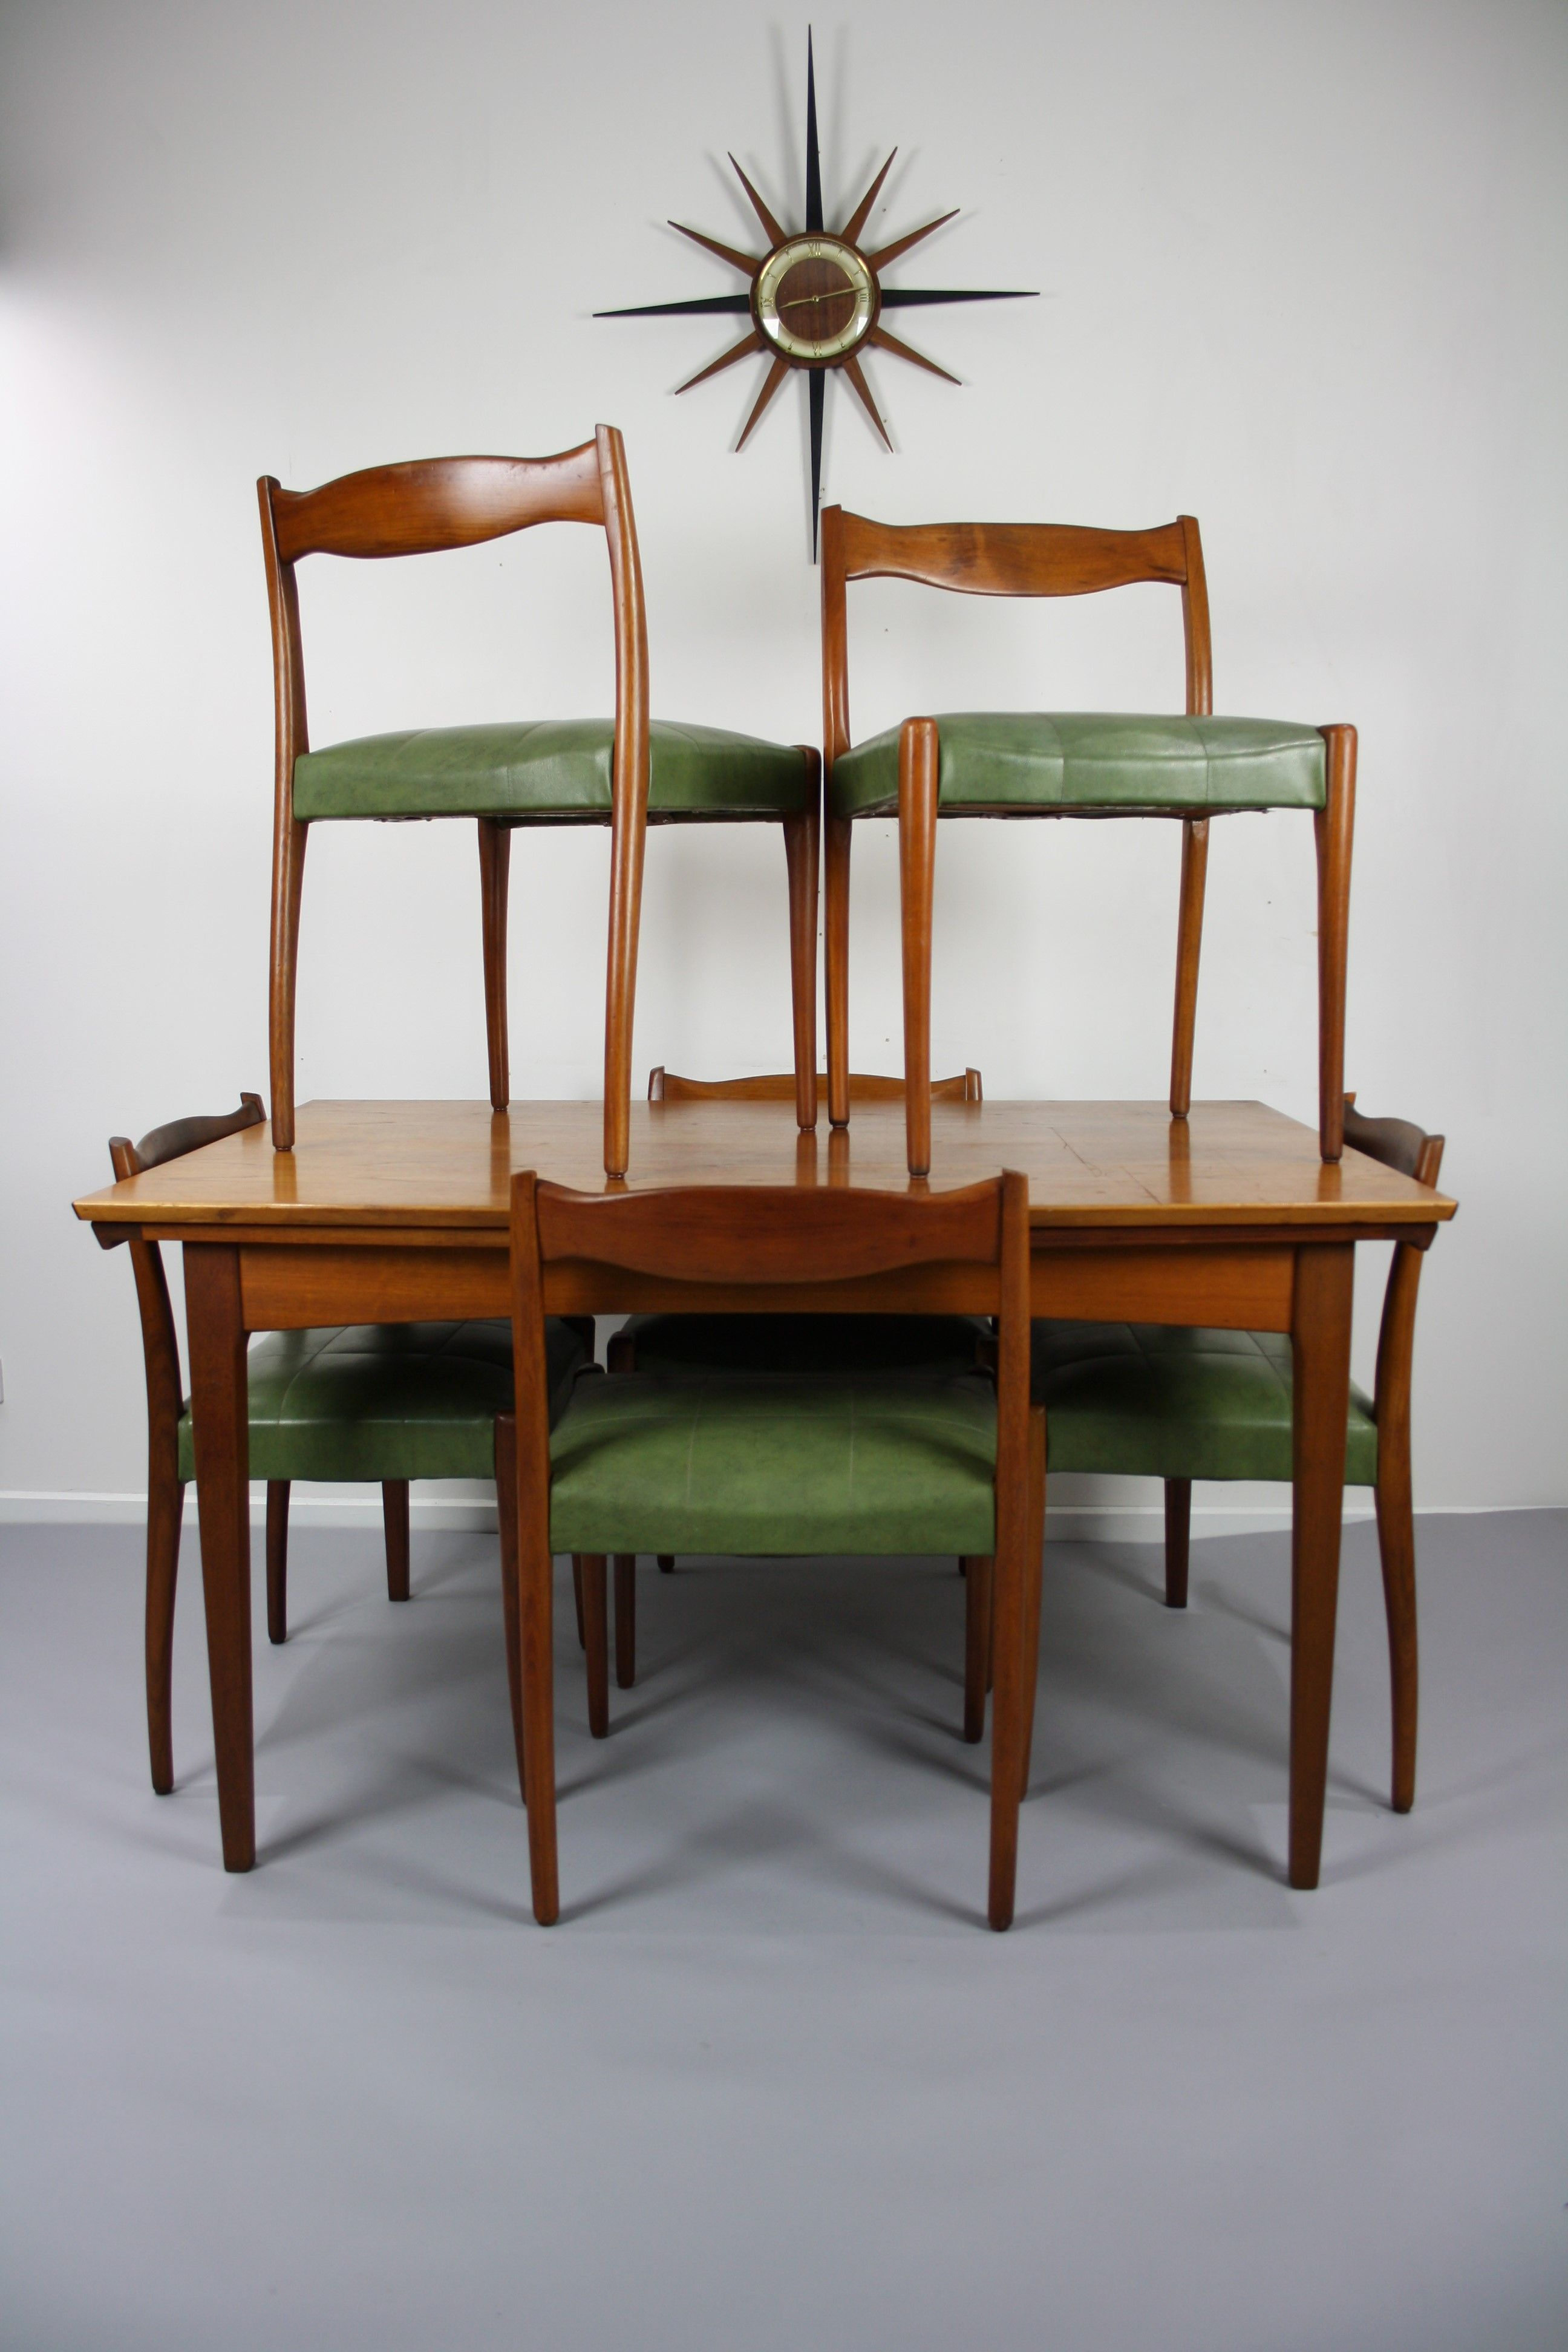 teak retro furniture. Teak Retro Furniture. Mid Century Fler 64 Dining Setting Table 6 Chairs Blackwood Spade Furniture T